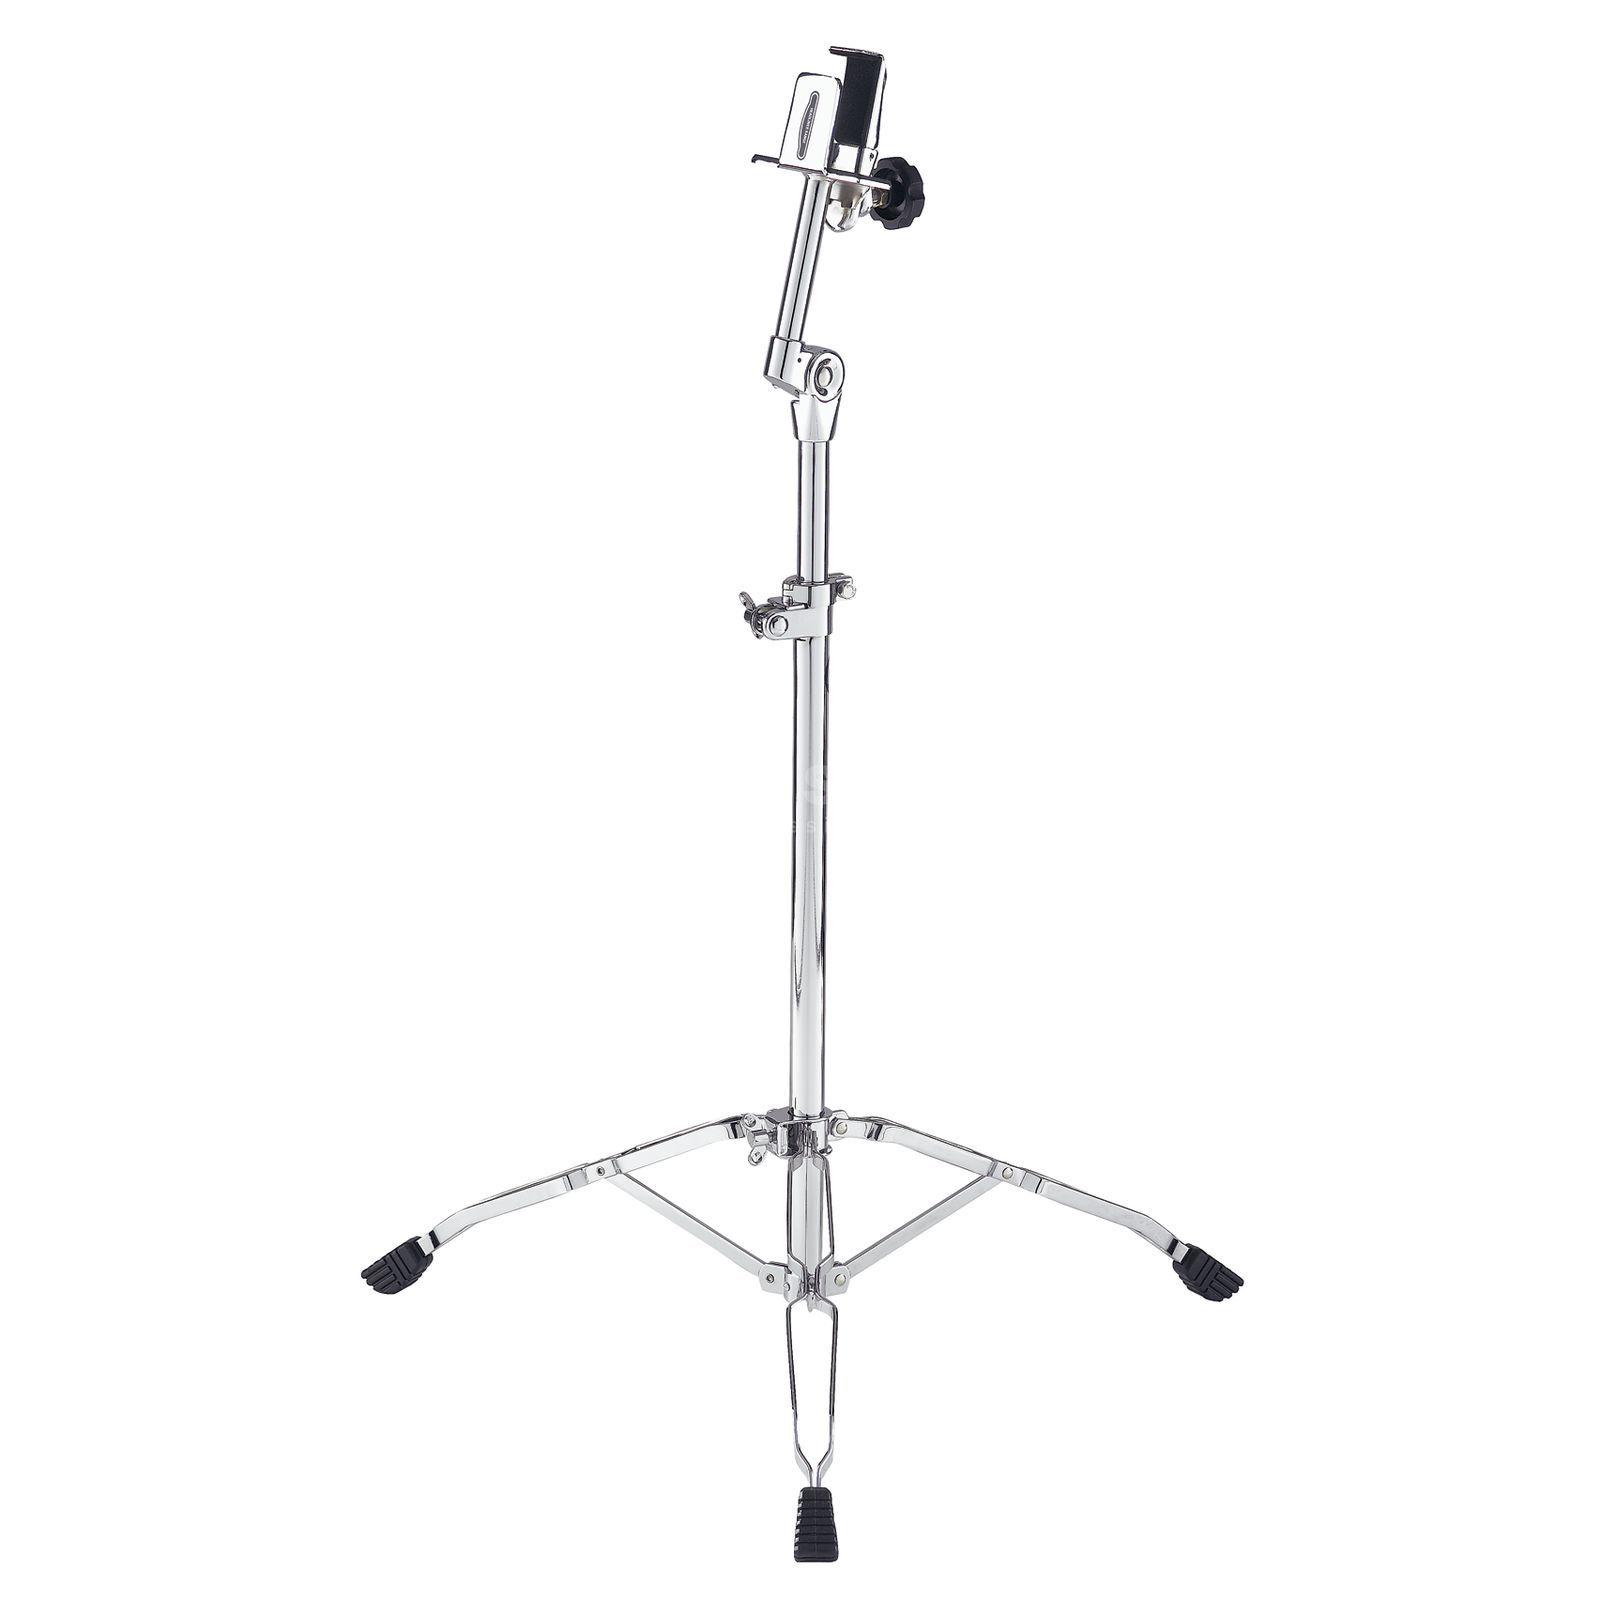 Meinl Bongo stand THBS  Product Image